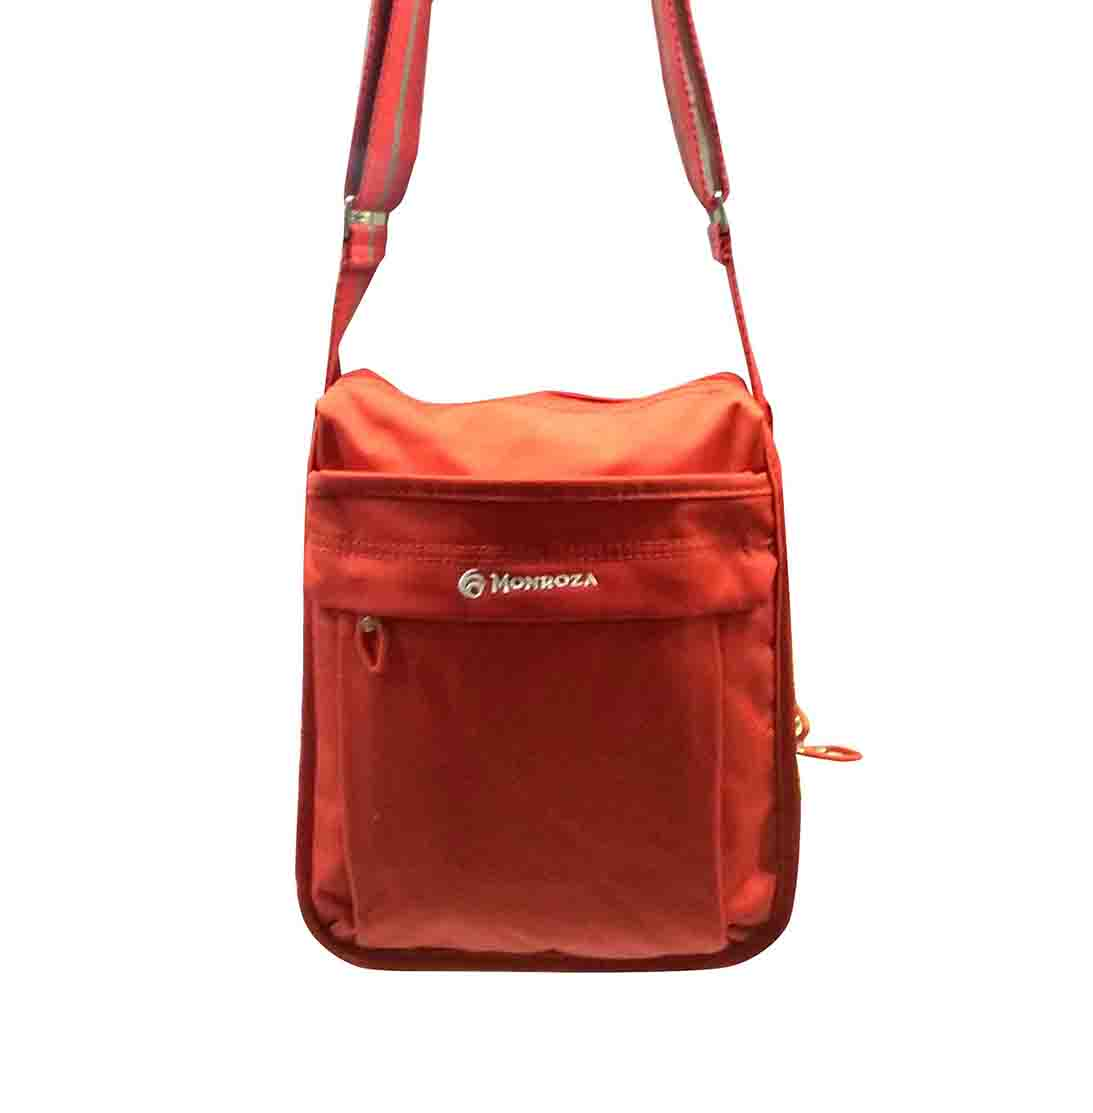 WHB SARA 07-ORANGE-HANDBAG